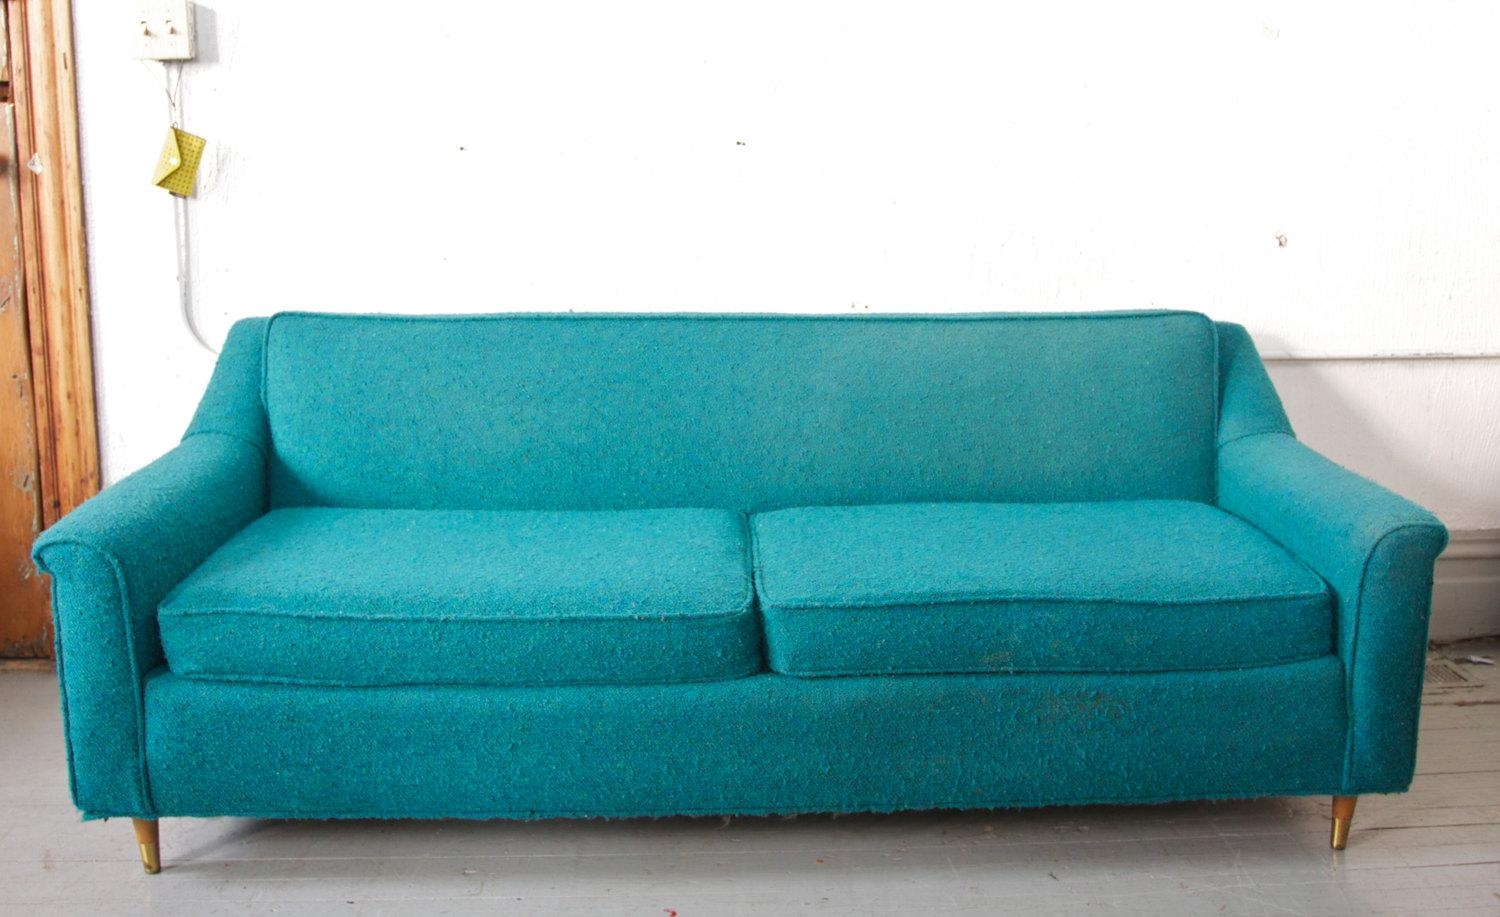 Sofas Center : Retro Sofas For Sale Remarkable Picture Regarding Retro Sofas For Sale (Image 14 of 20)